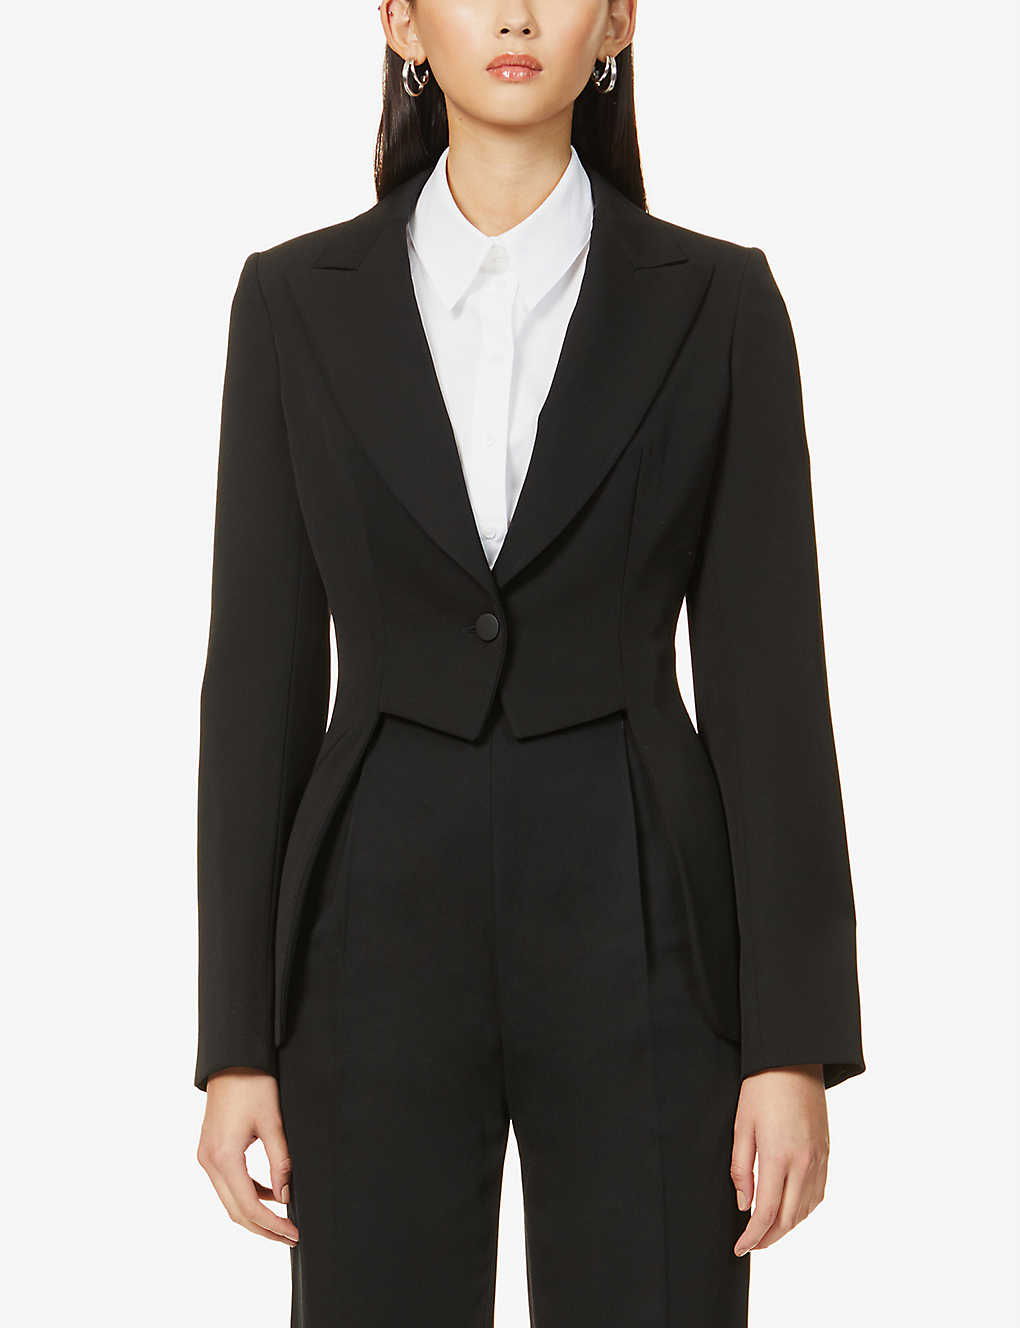 AZZEDINE ALAIA: Cut-out single-breasted wool blazer